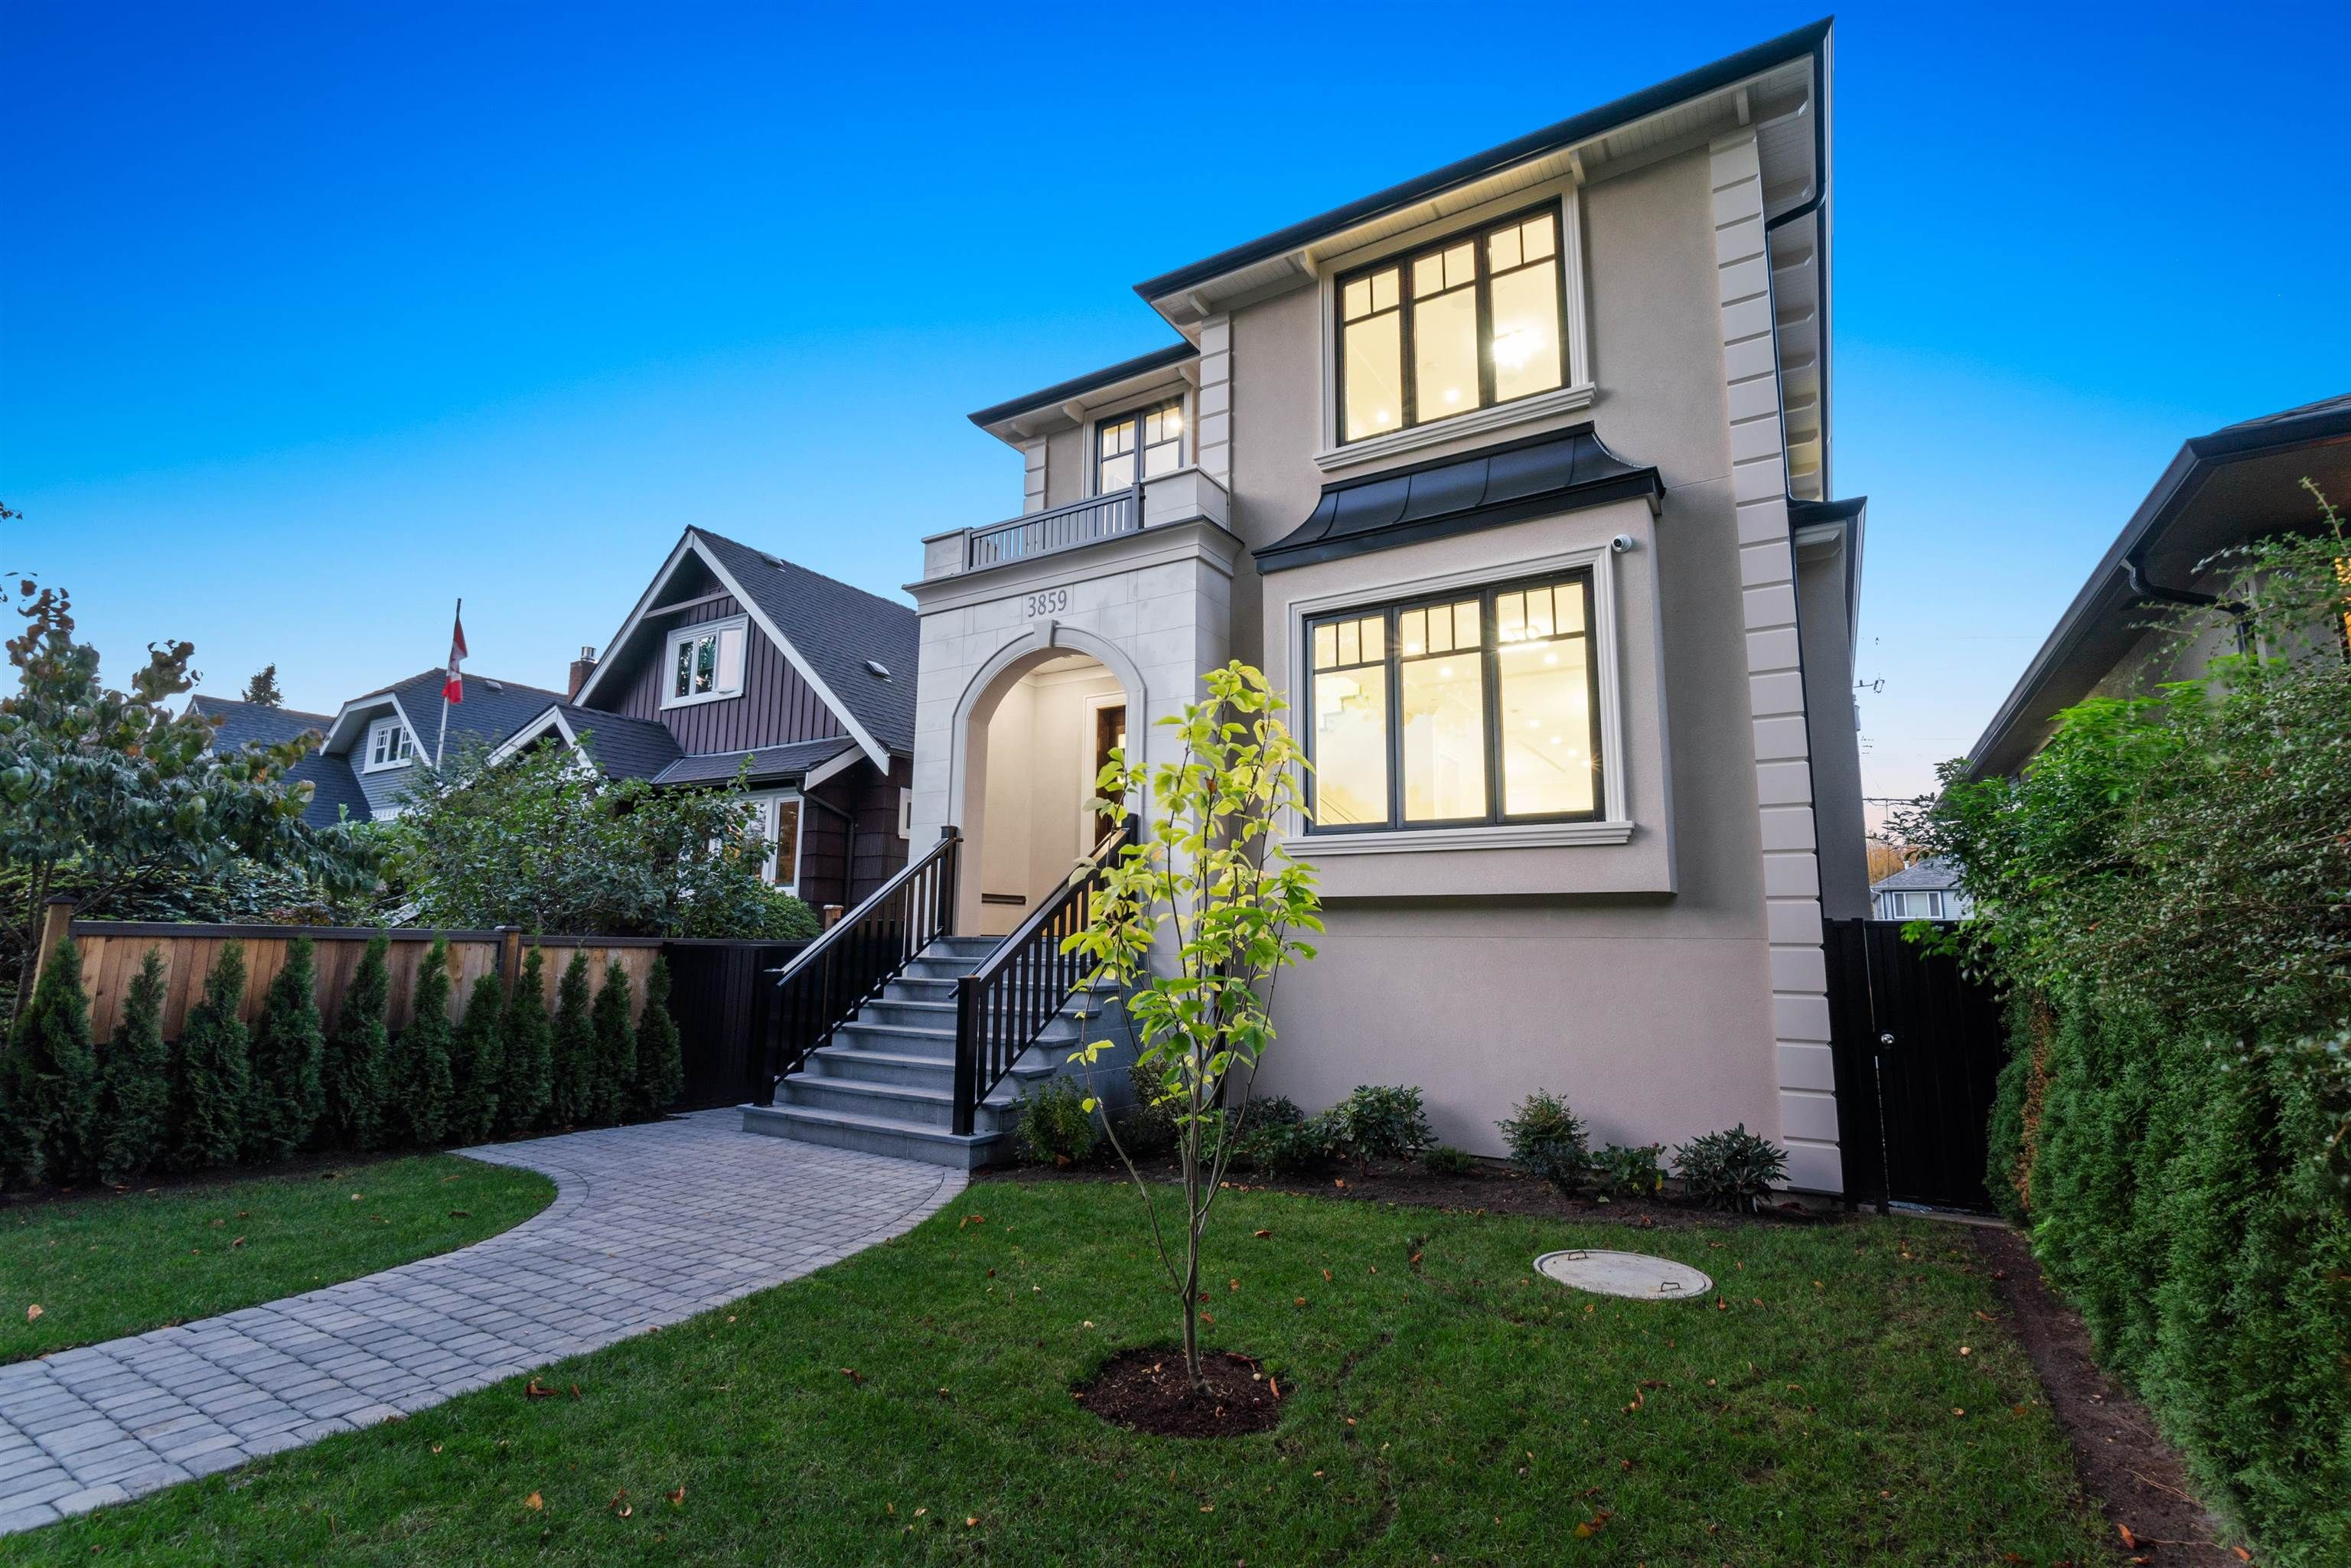 Main Photo: 3859 W 22ND Avenue in Vancouver: Dunbar House for sale (Vancouver West)  : MLS®# R2624110